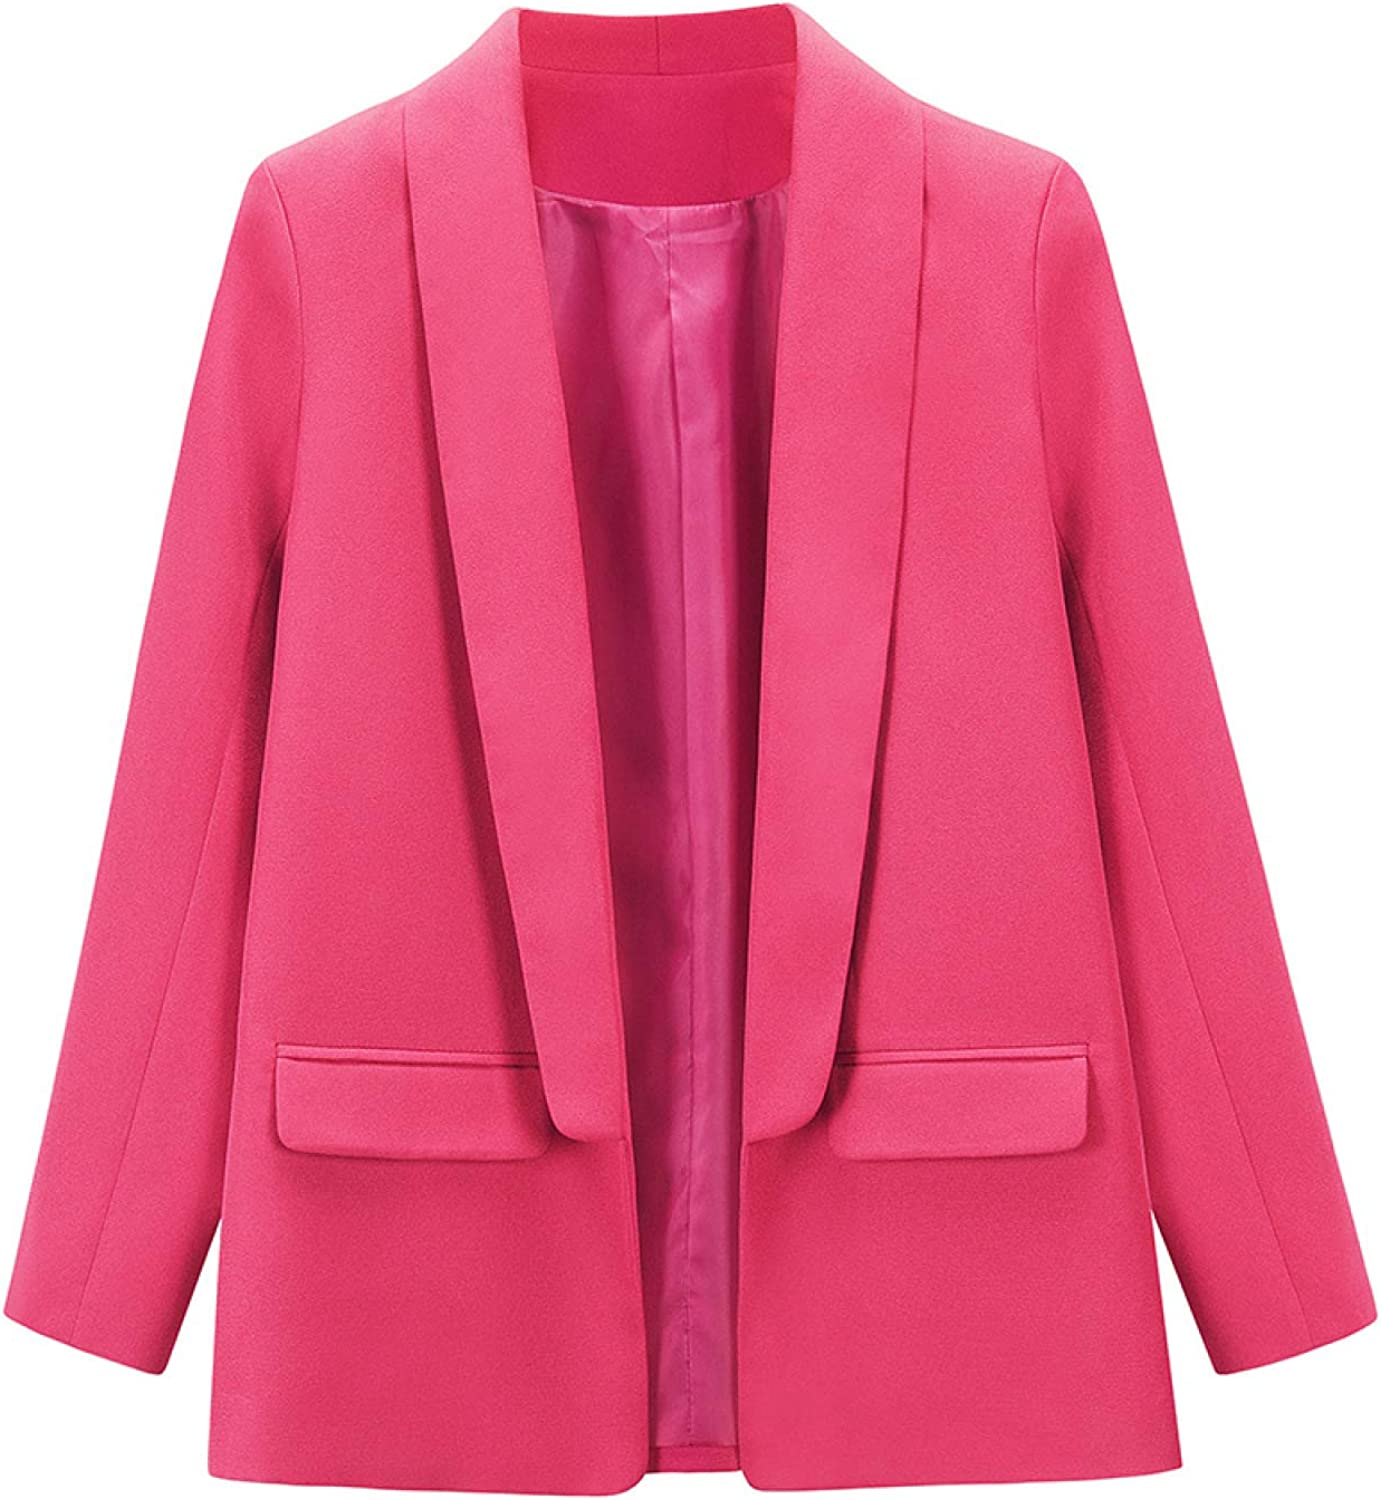 Ladies Slim Fit Solid Color Suit Elegant Busi Notch Special price for a Courier shipping free shipping limited time Lapel Jacket